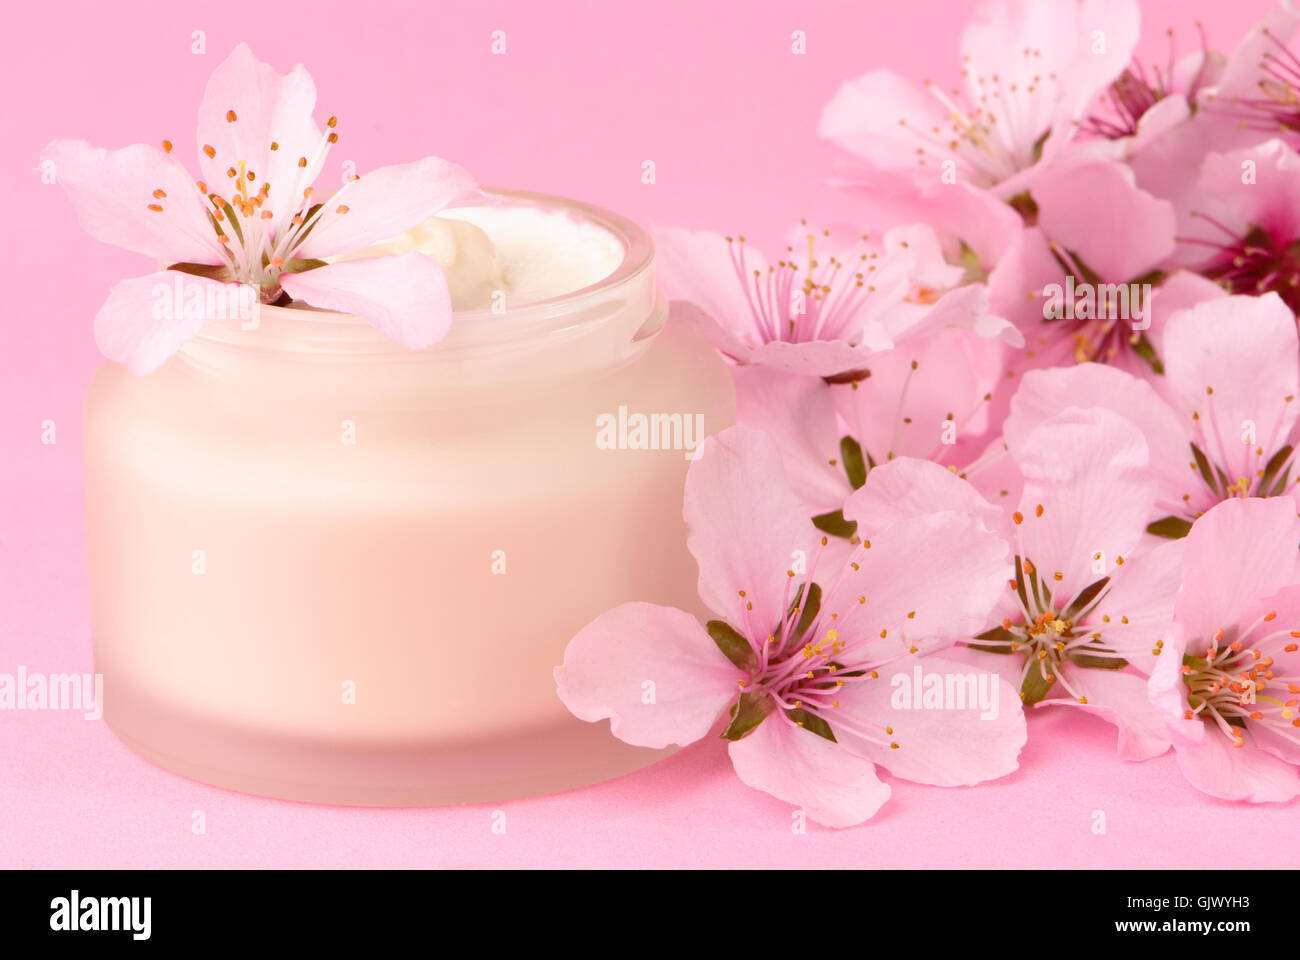 face cream pink - Stock Image